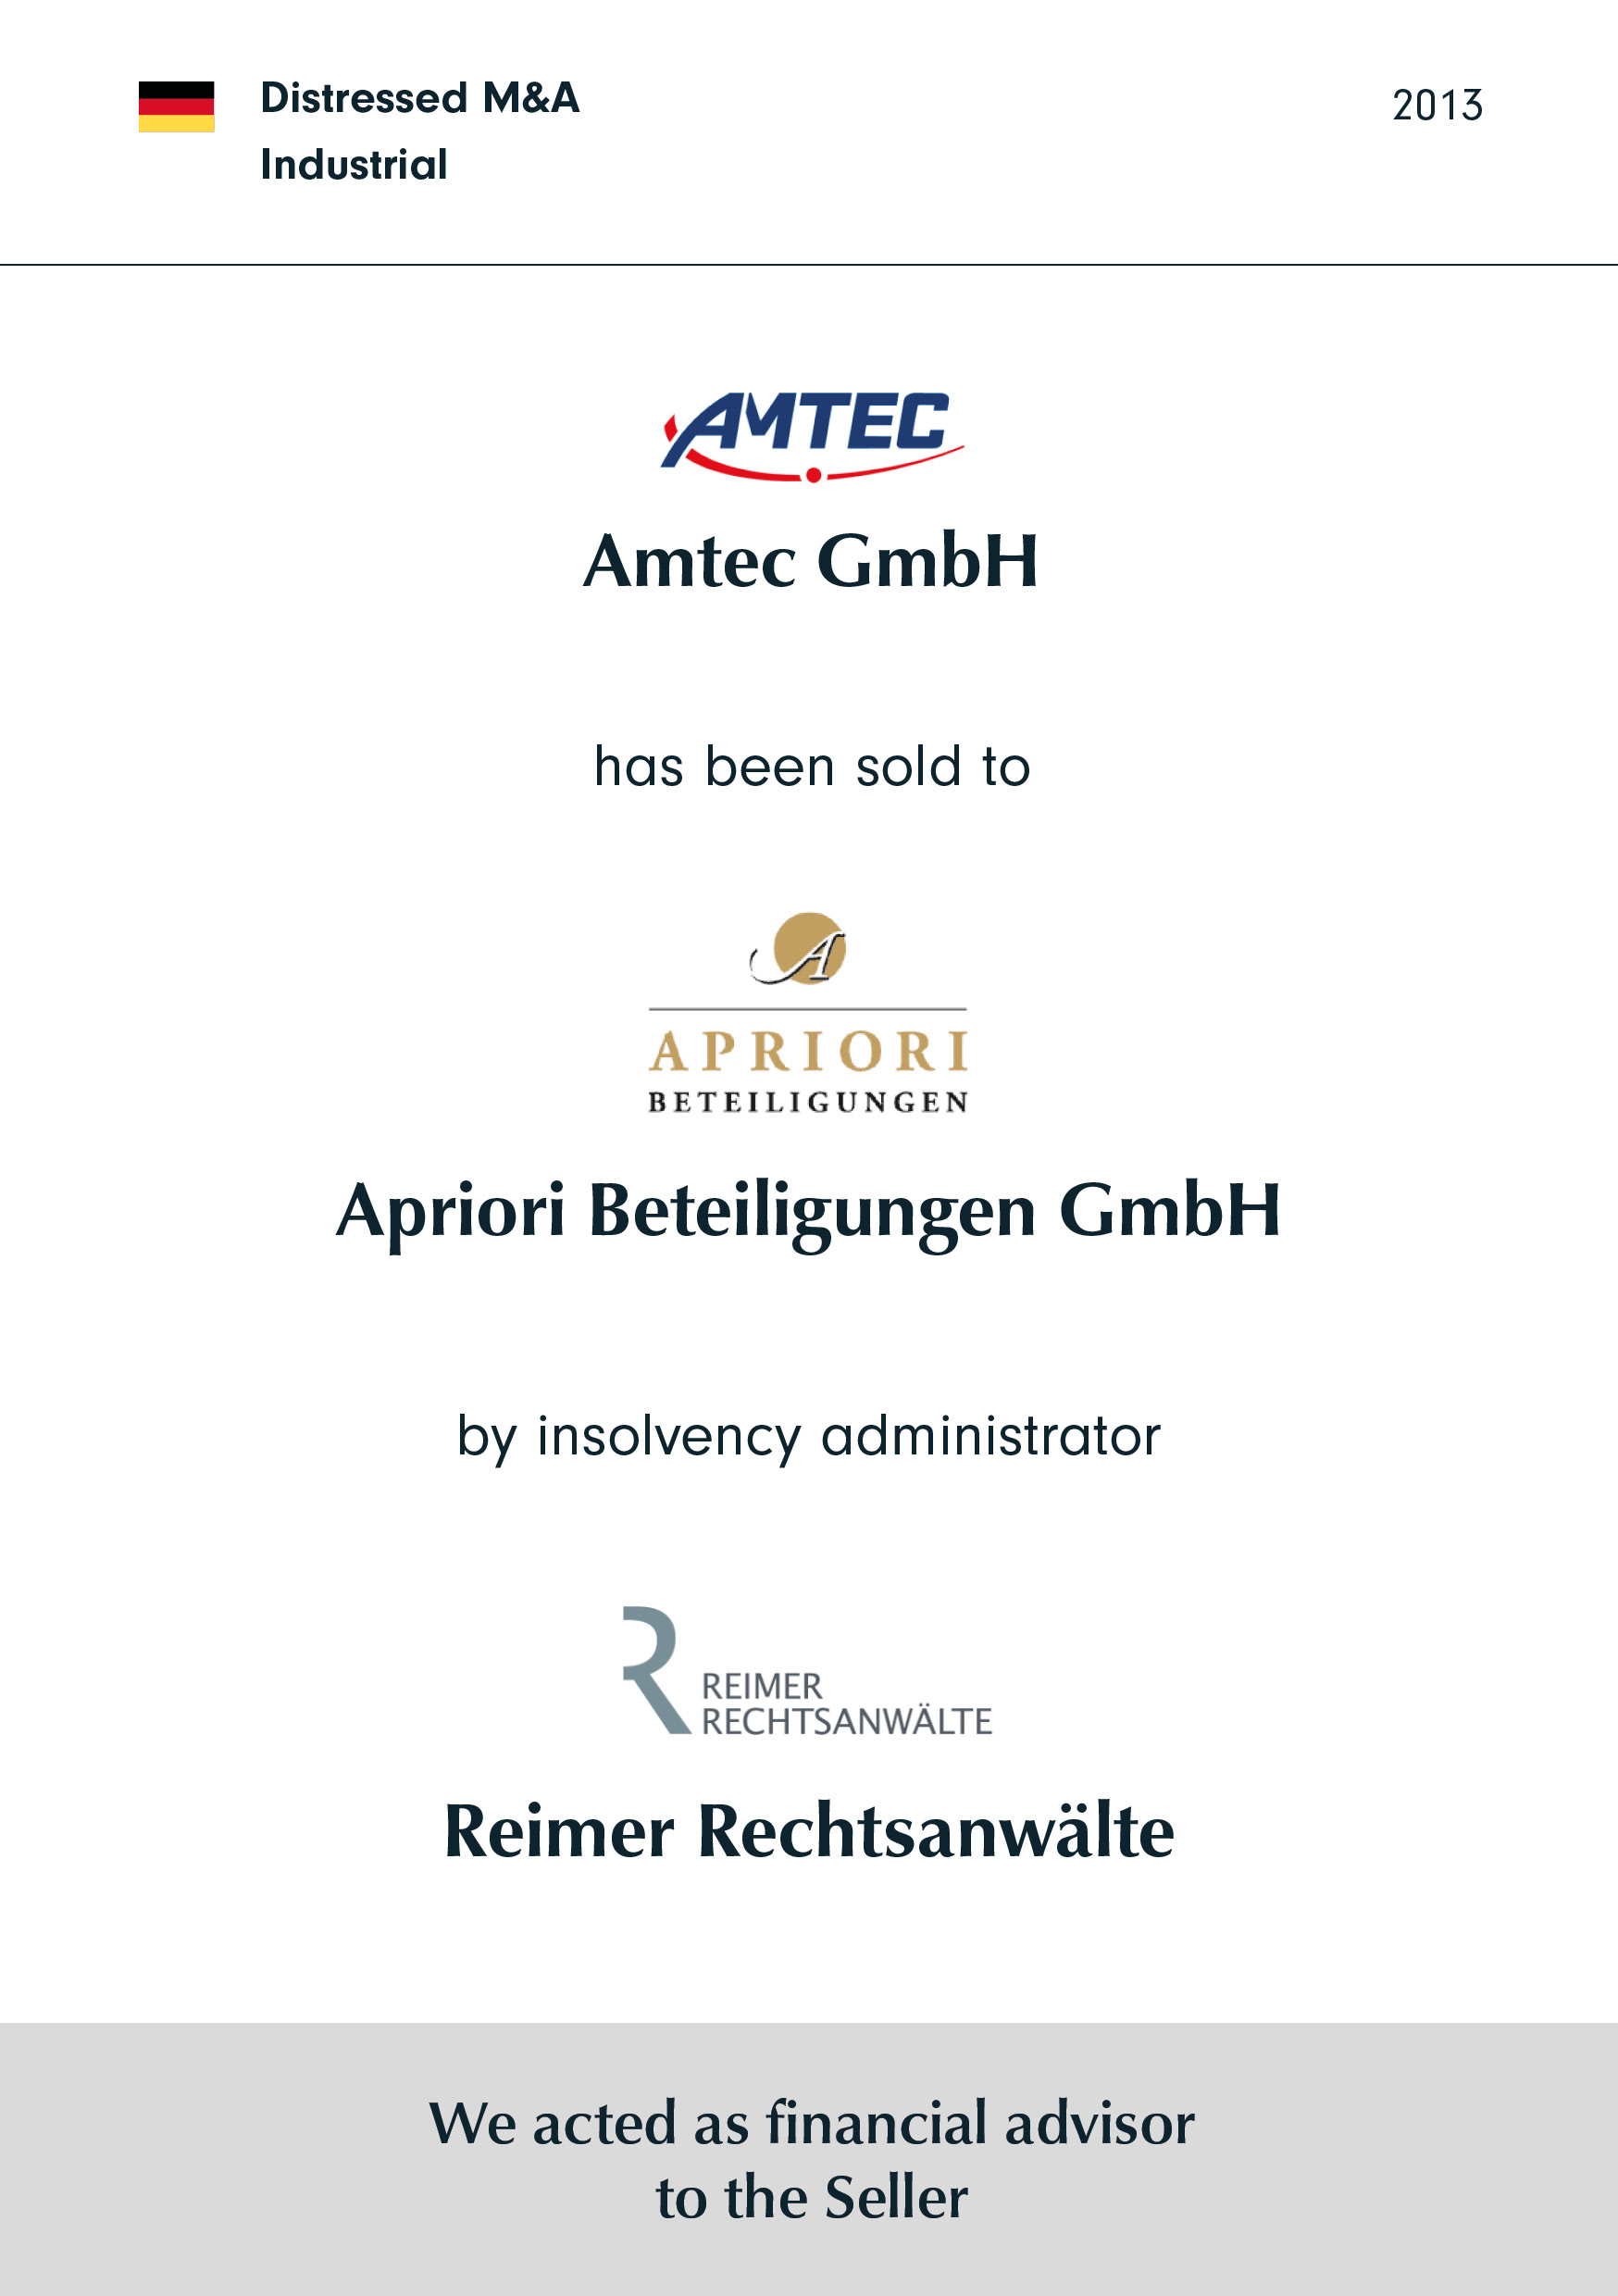 AMTEC has been sold to APRIORI by insolvency administrator Reimer Rechtsanwälte